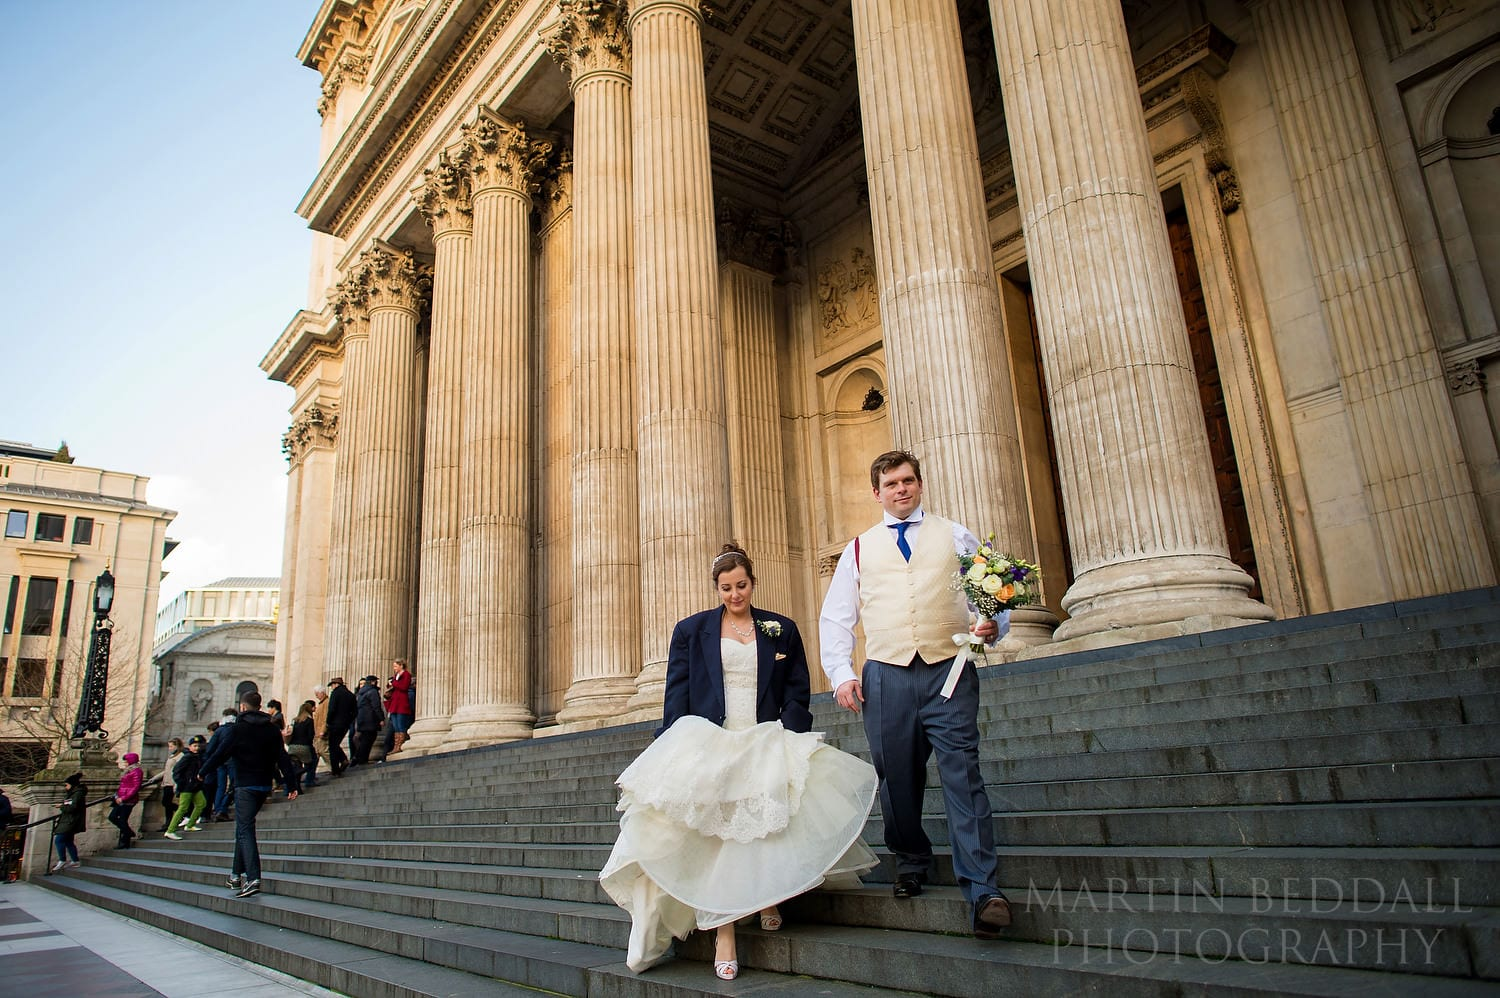 Bride and groom on the steps of St Paul's Cathedral after a winter wedding